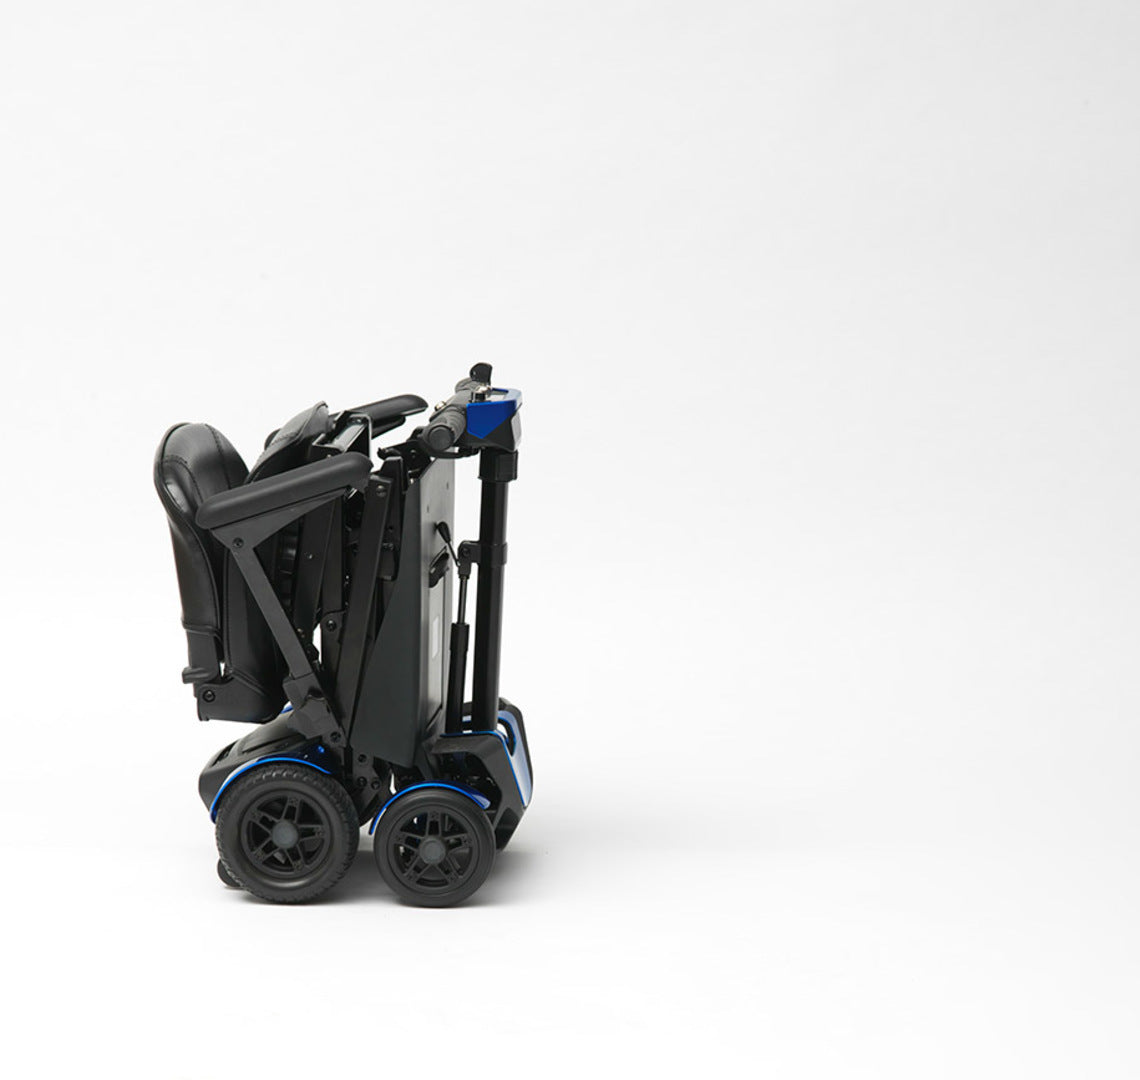 Drive 4 Wheel Lightweight Auto Folding Scooter